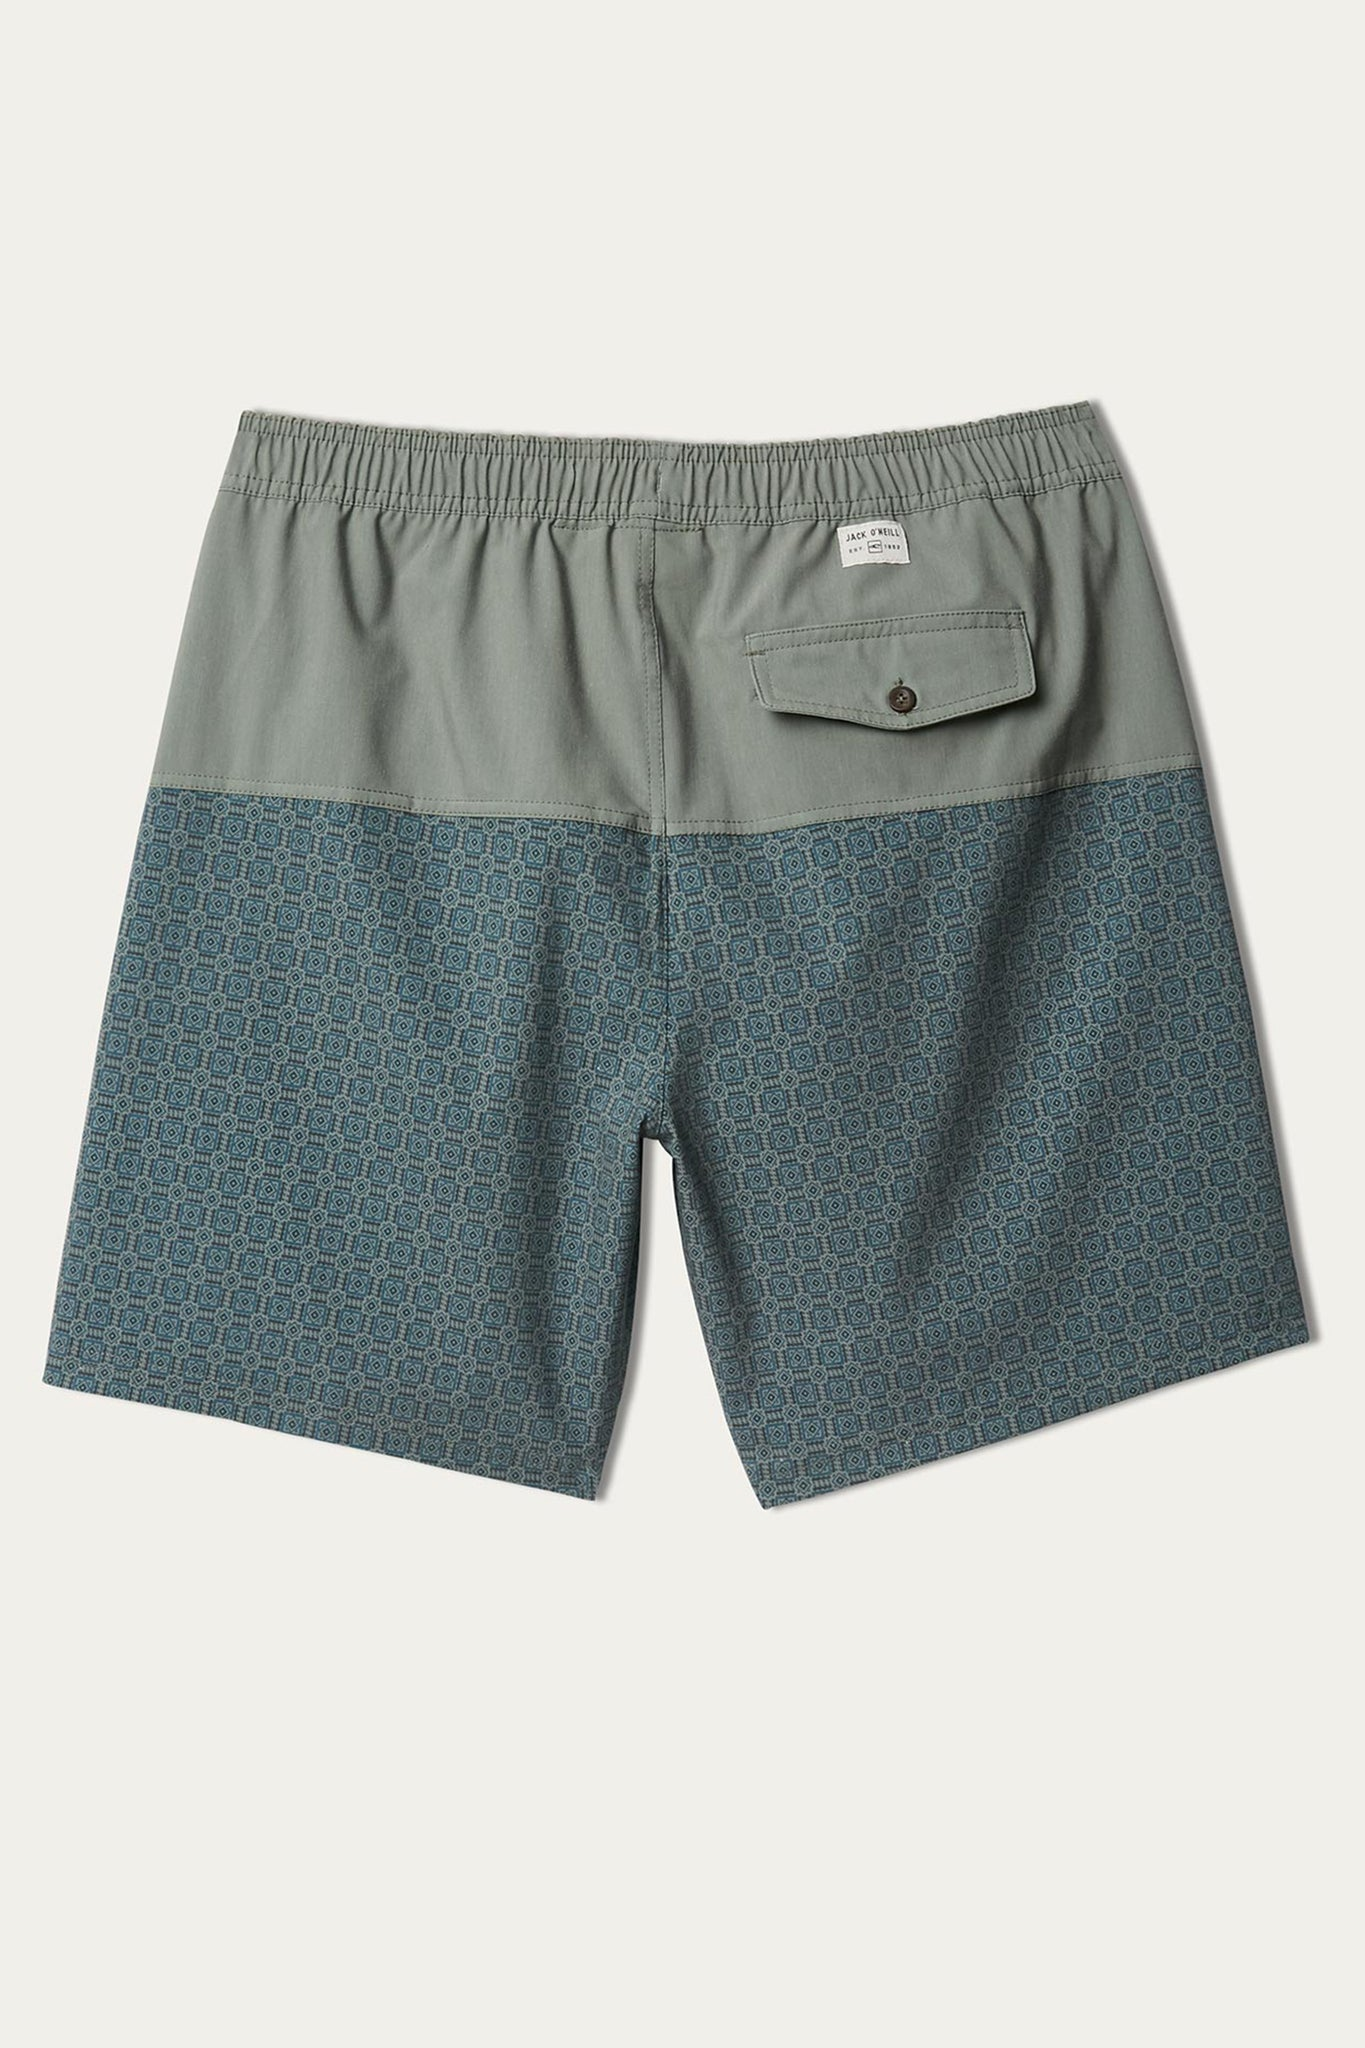 Jack O'Neill Costa Azul Boardshorts | O'Neill Clothing USA